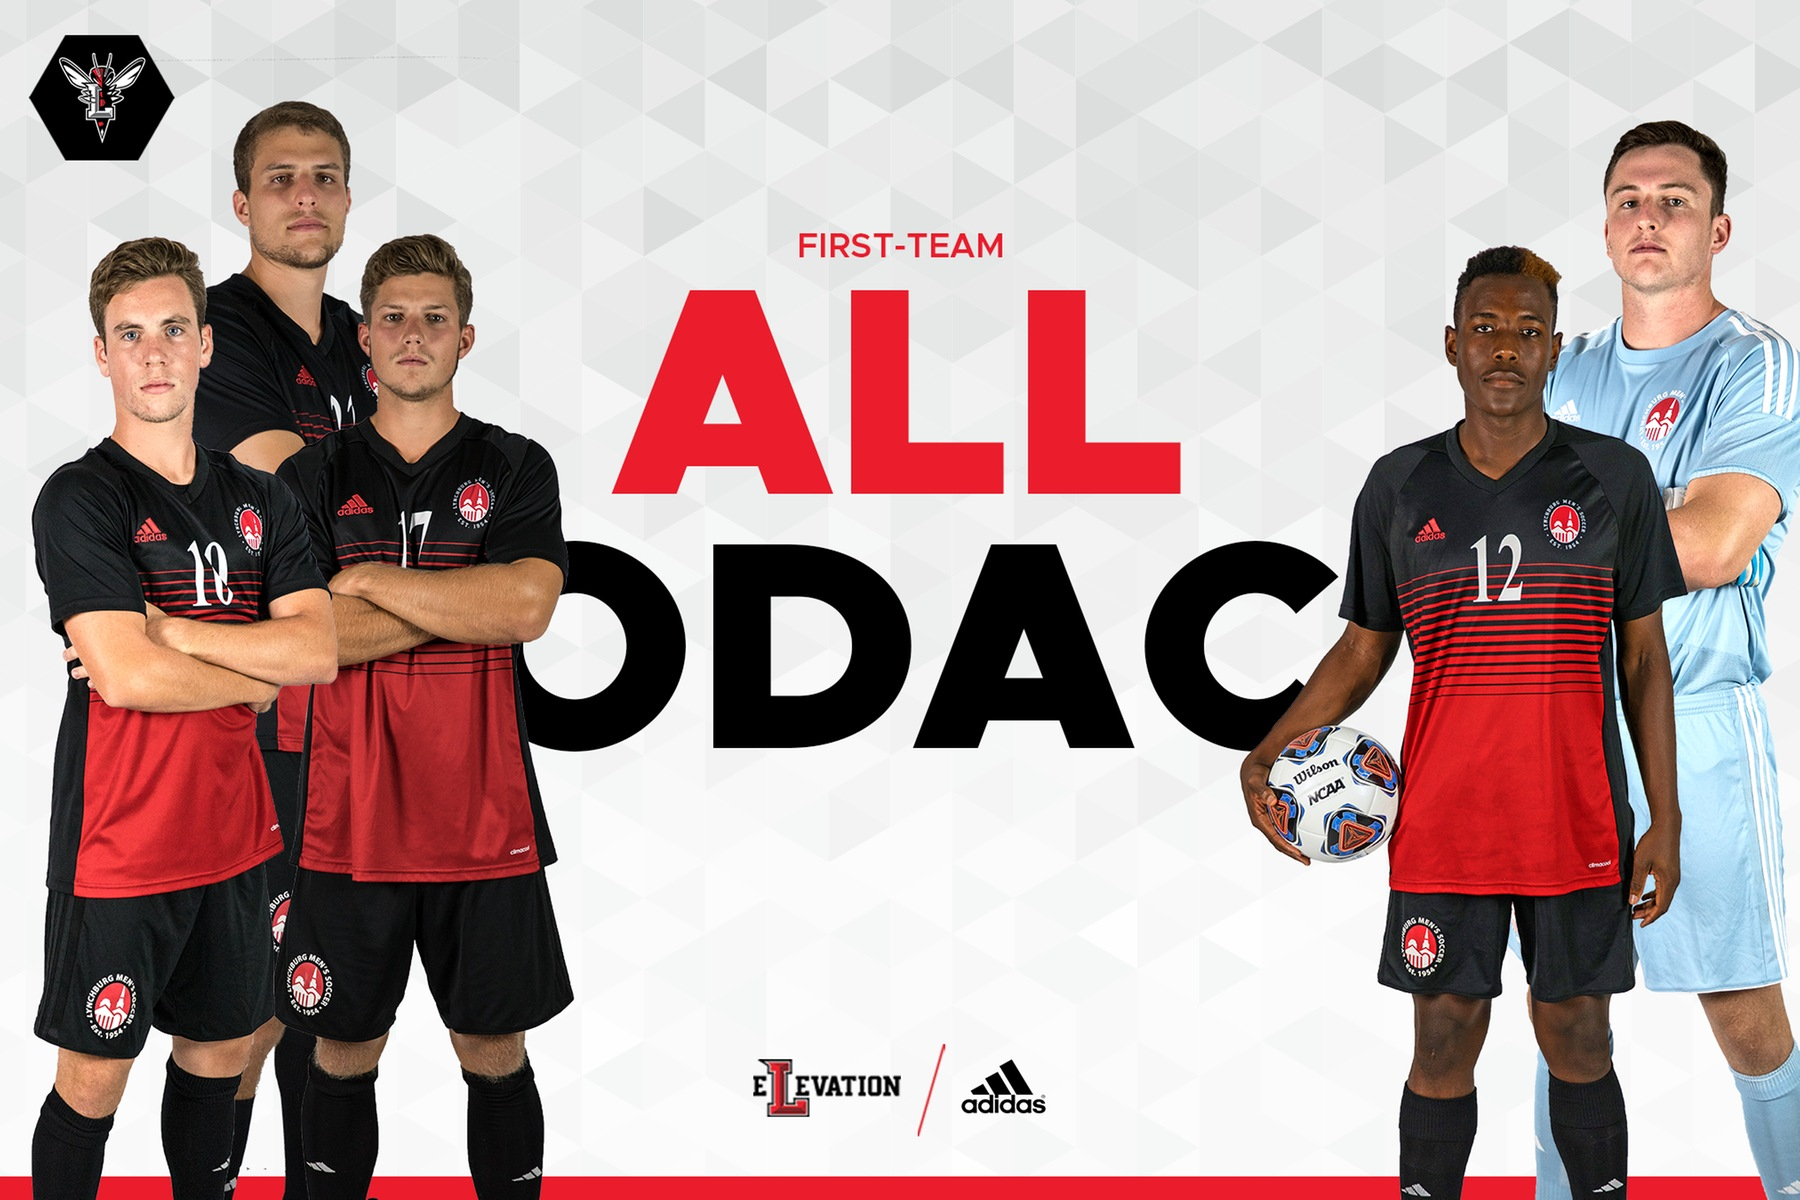 Images of the five first-team all-conference men's soccer players on white background. Text in red: First-team all-ODAC